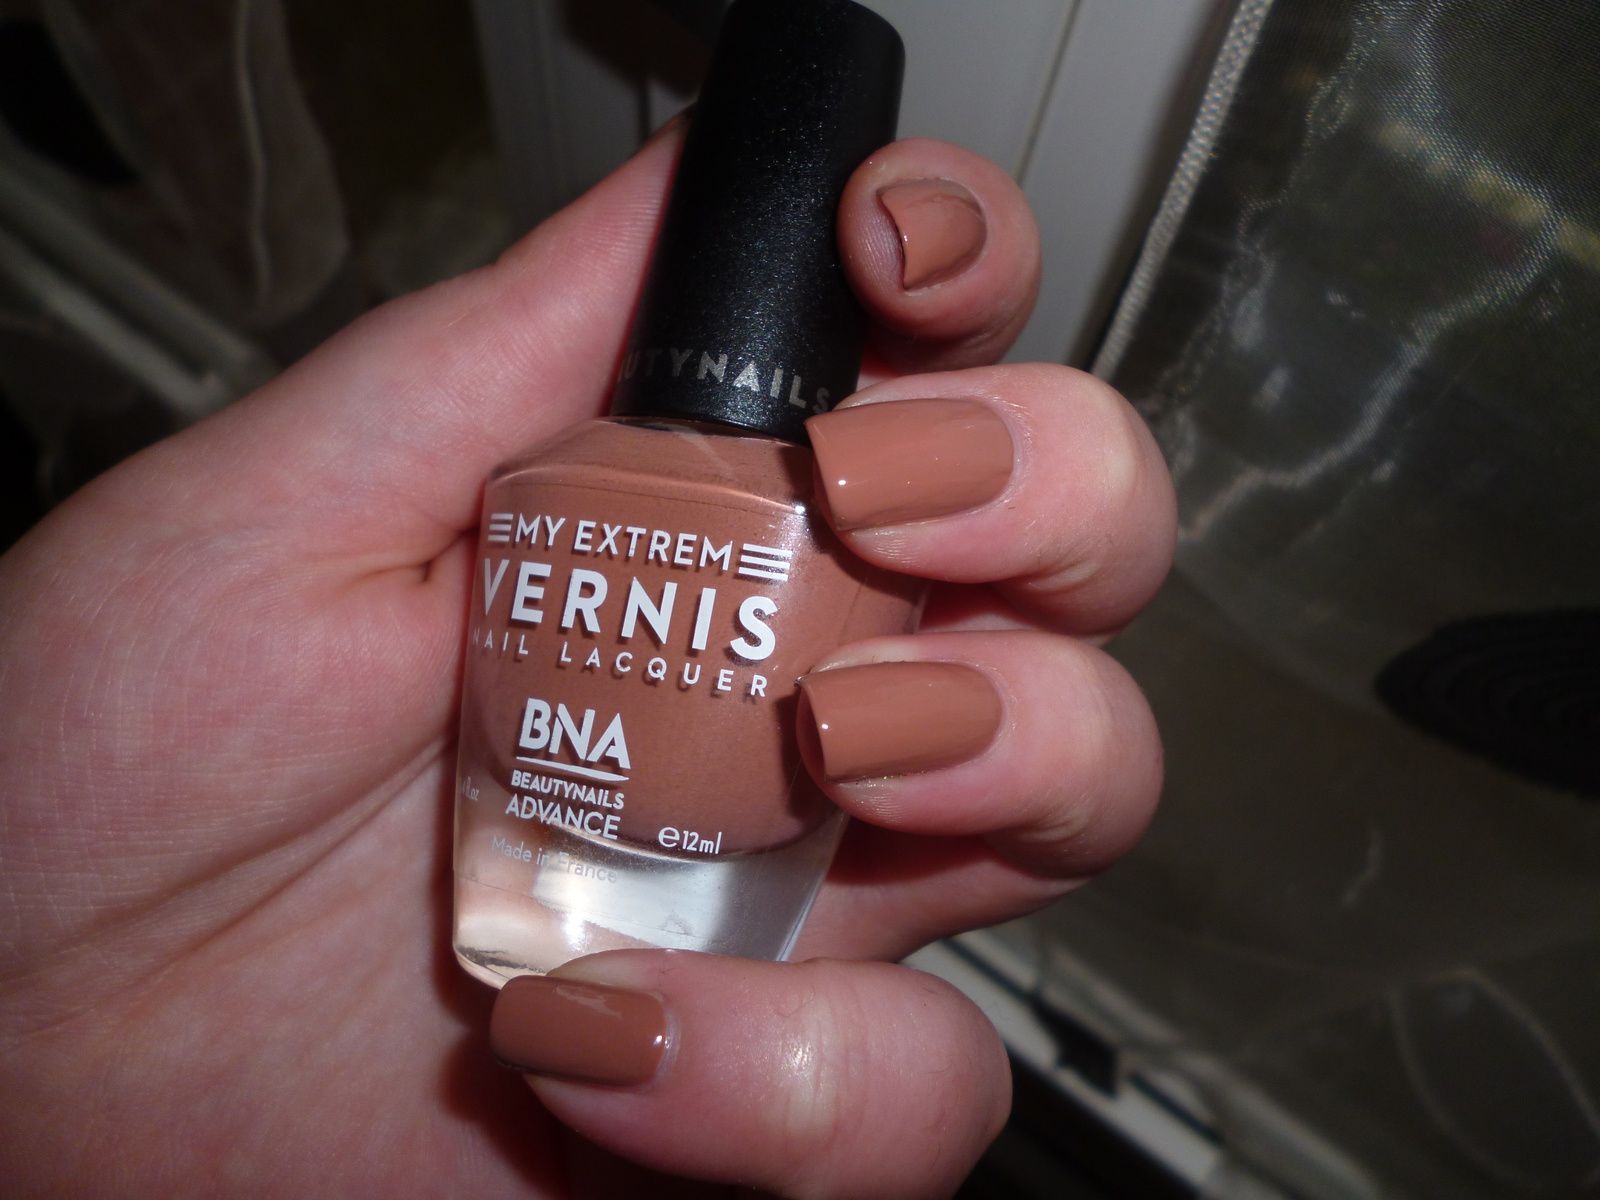 MY EXTREM VERNIS CREAM BLUSH - Beautynails